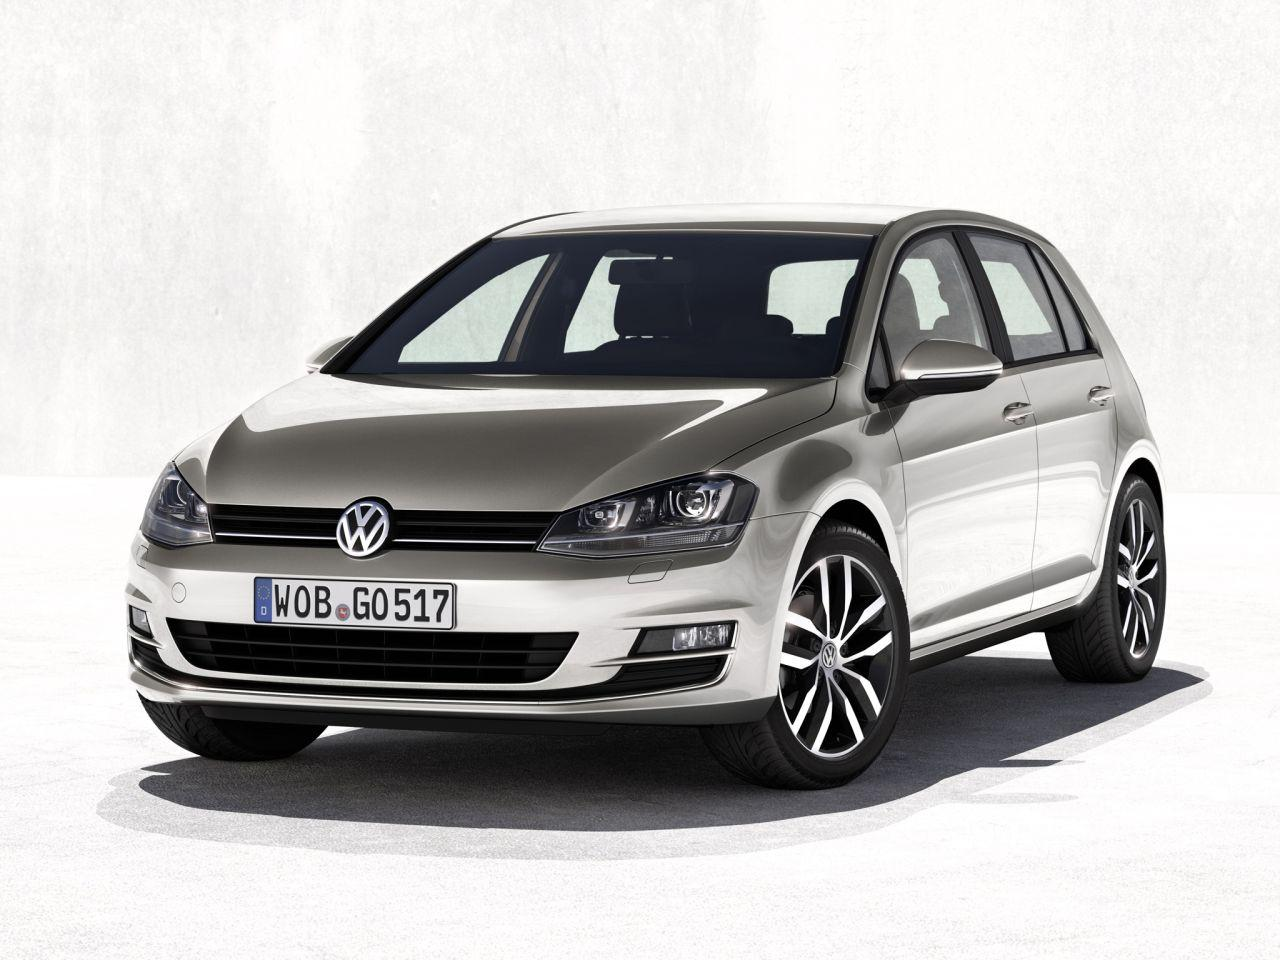 volkswagen golf vii fully revealed in new leaked photos image gallery updated autoevolution. Black Bedroom Furniture Sets. Home Design Ideas